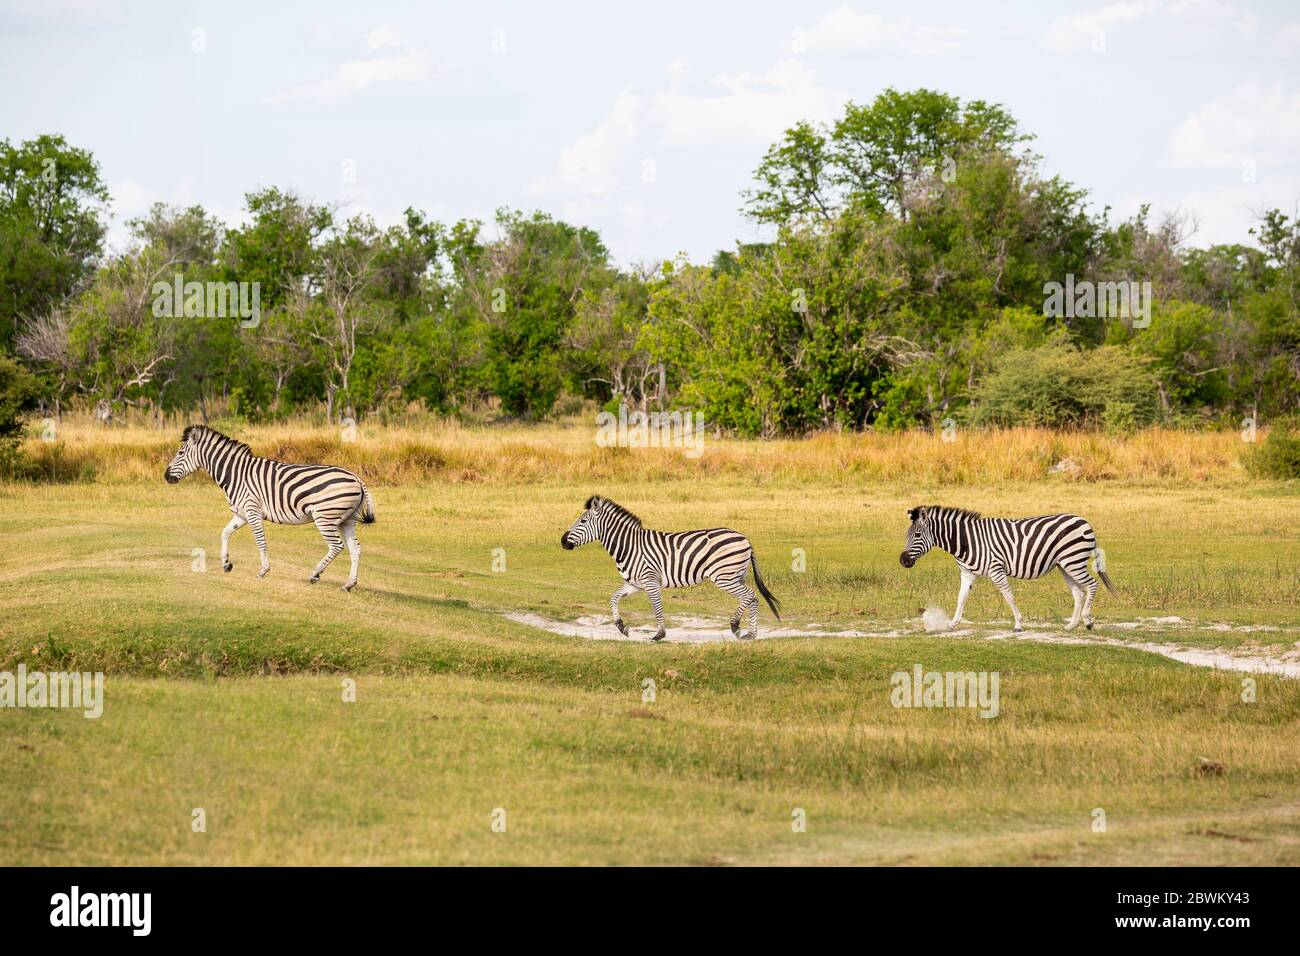 A group of Burchell's zebra at a game reserve Stock Photo